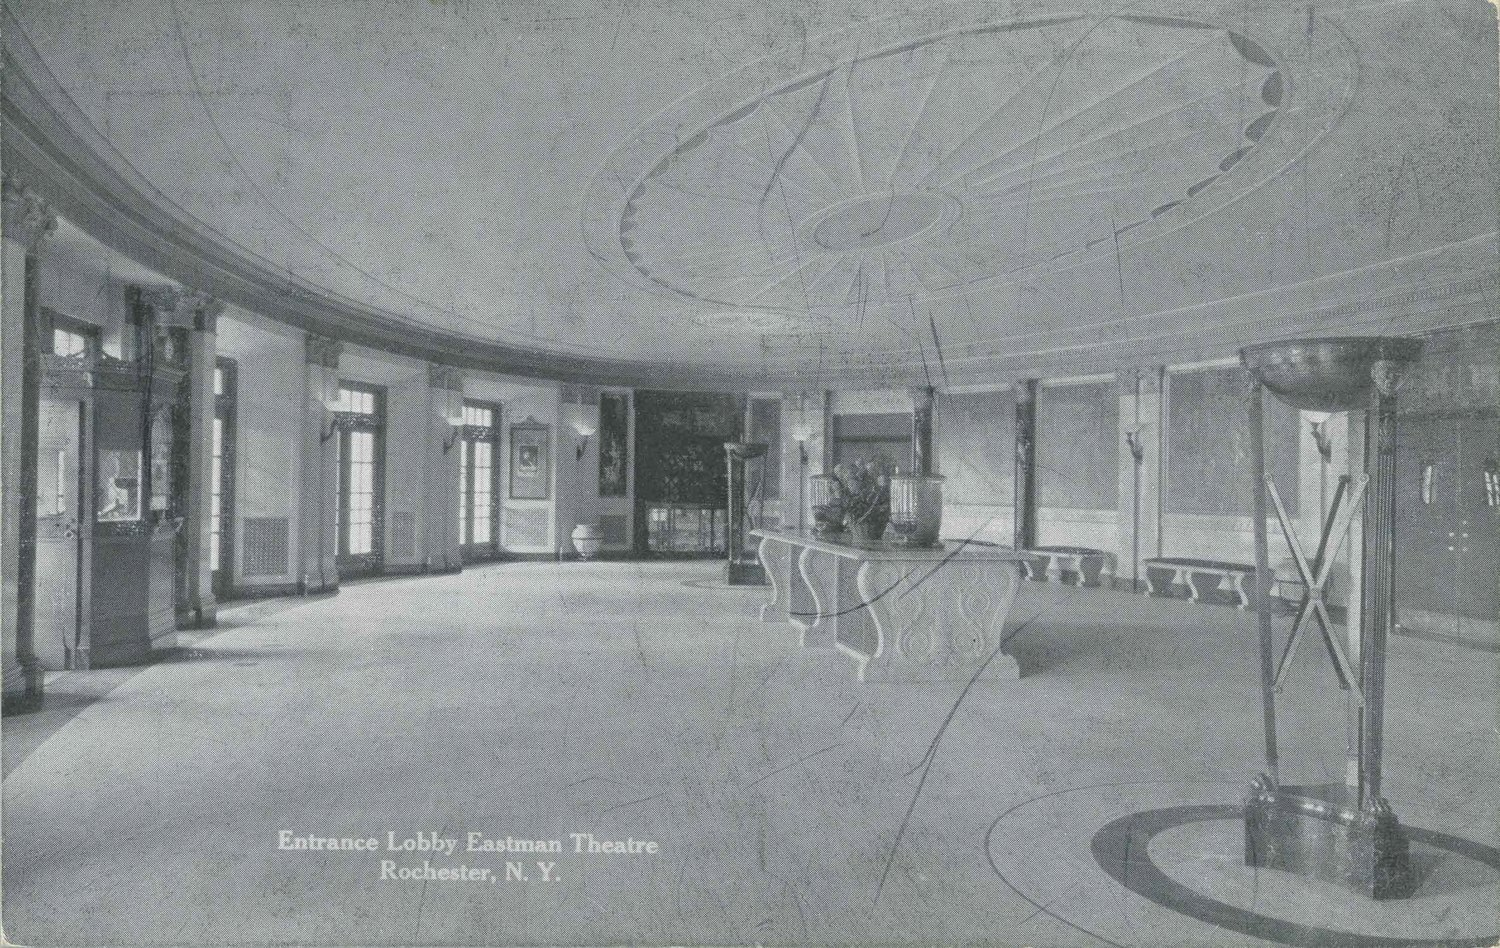 Entrance Lobby, Eastman Theatre. Rochester, N.Y.